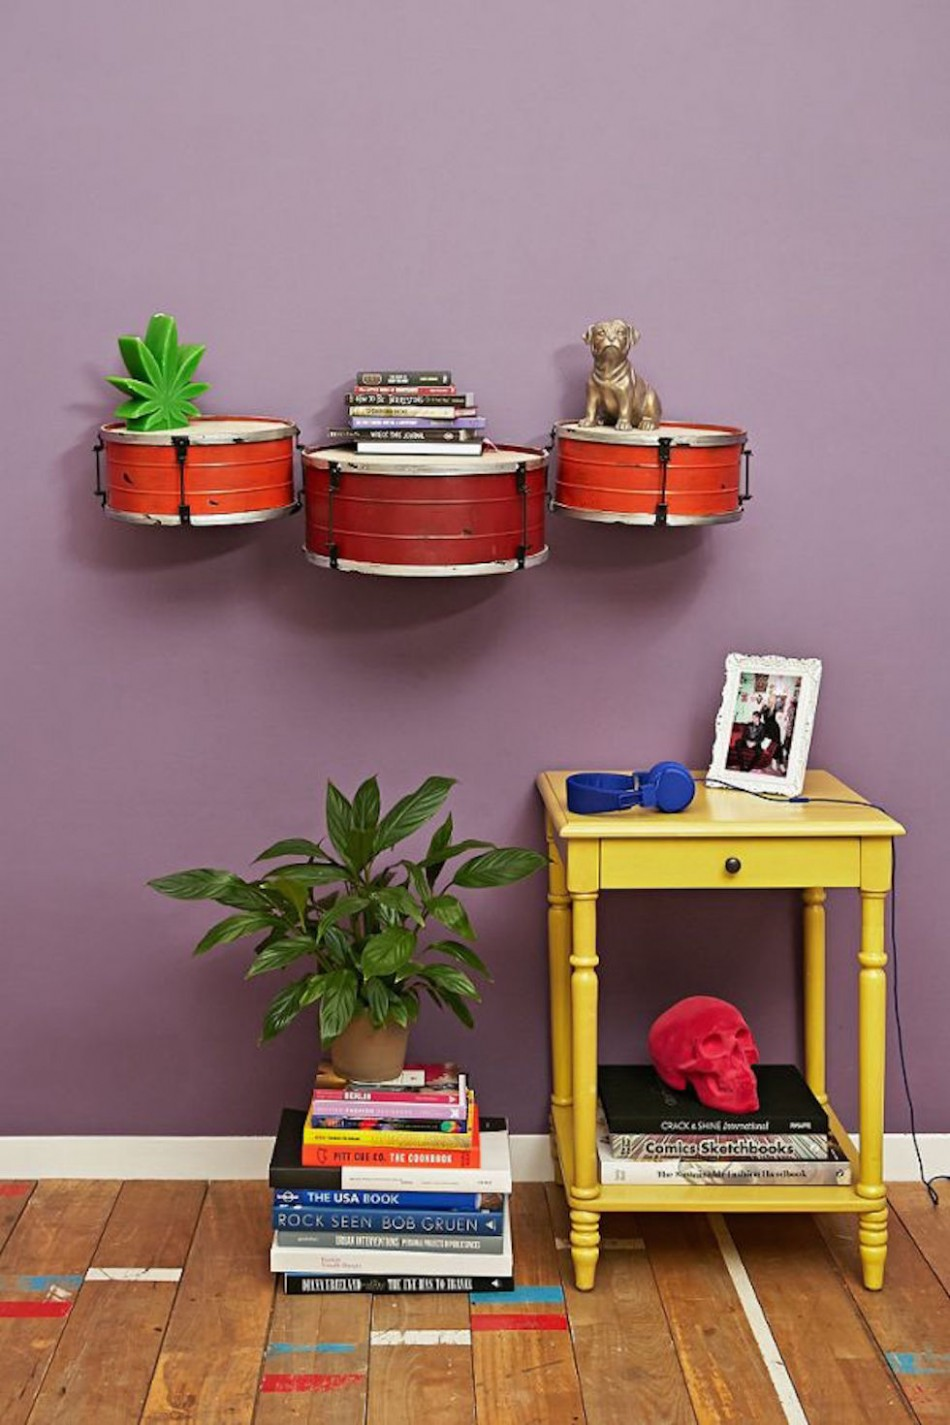 Interior design inspired by Music